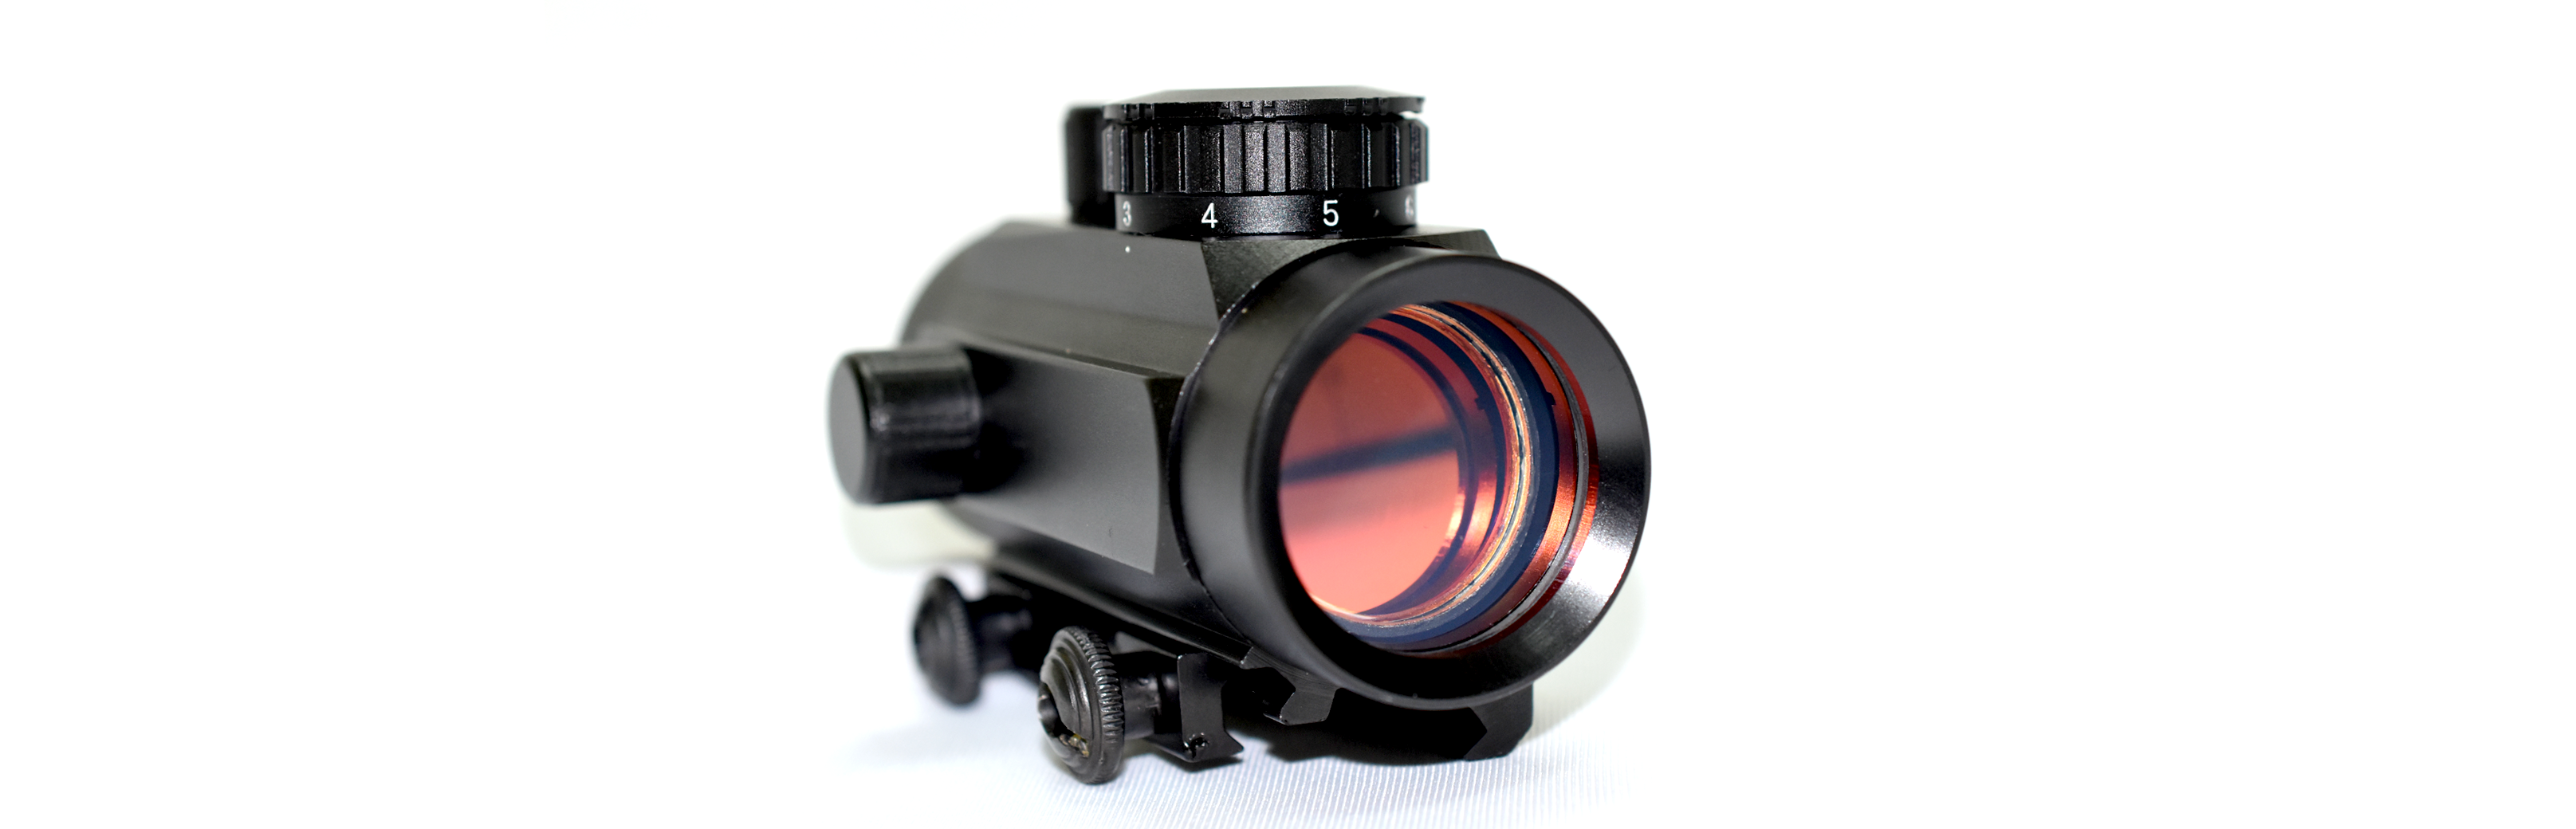 /archive/product/item/images/RedDotSightScope/Red-Dot-Sight-Scope-1.png